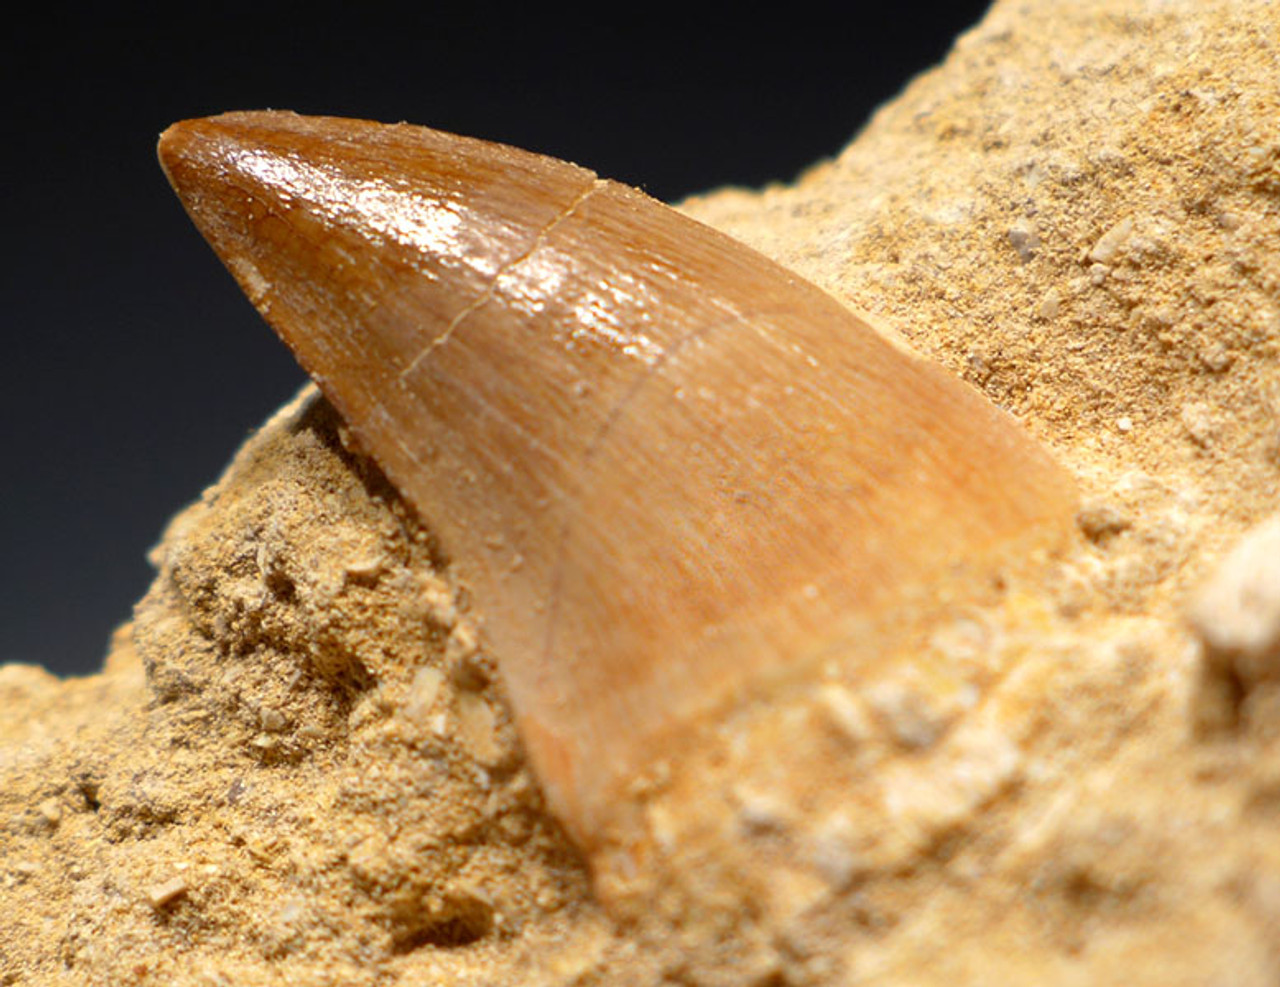 DT1X028 - SCARCE LIODON ANCEPS MOSASAUR TOOTH IN MATRIX